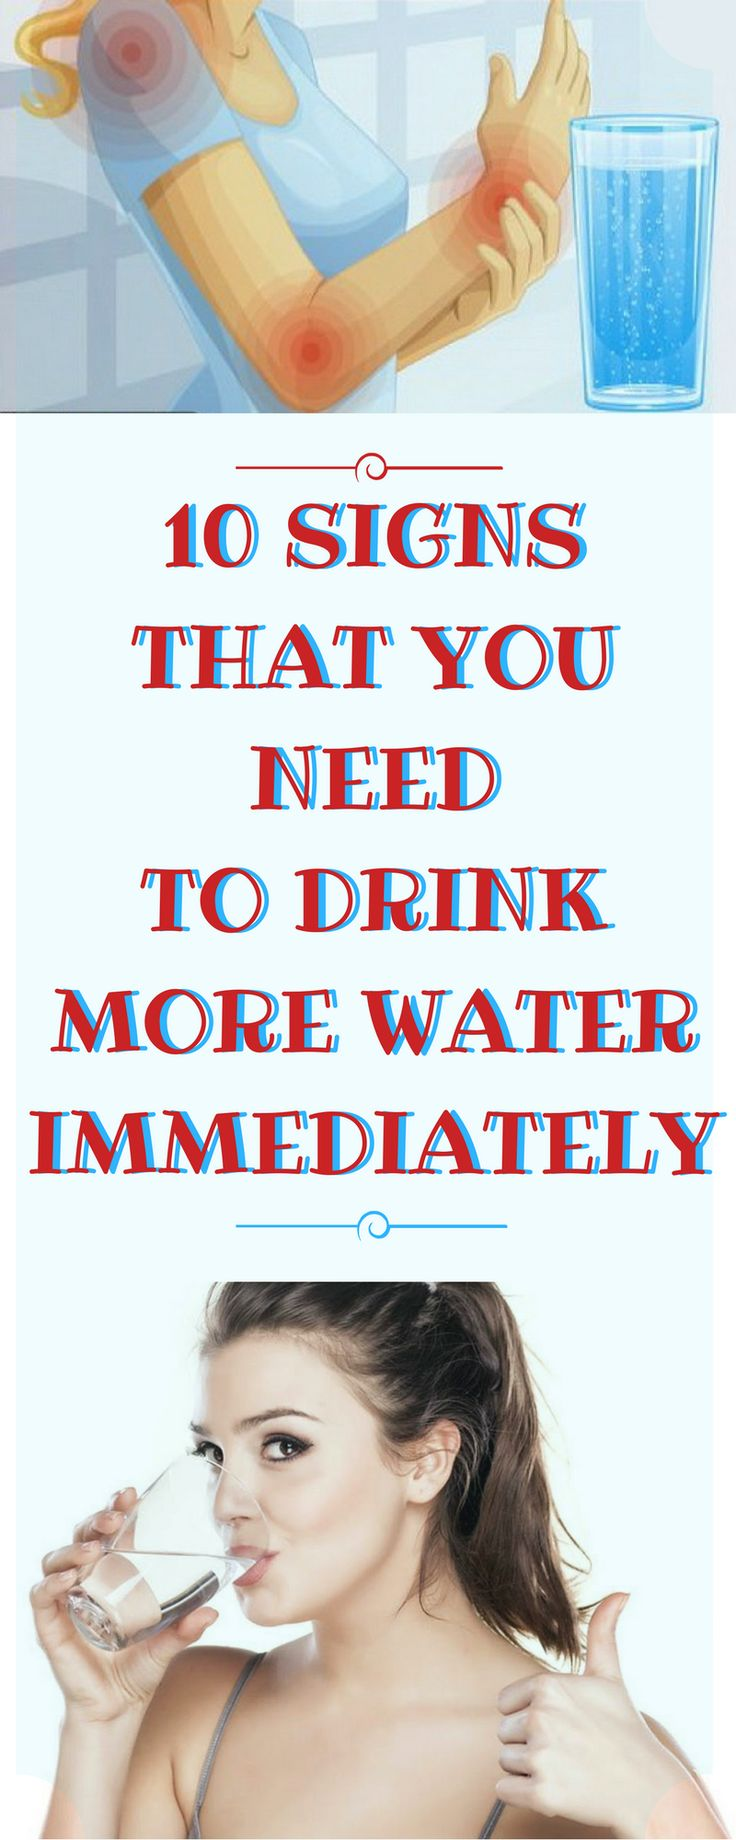 10 SIGNS THAT YOU NEED TO DRINK MORE WATER IMMEDIATELY